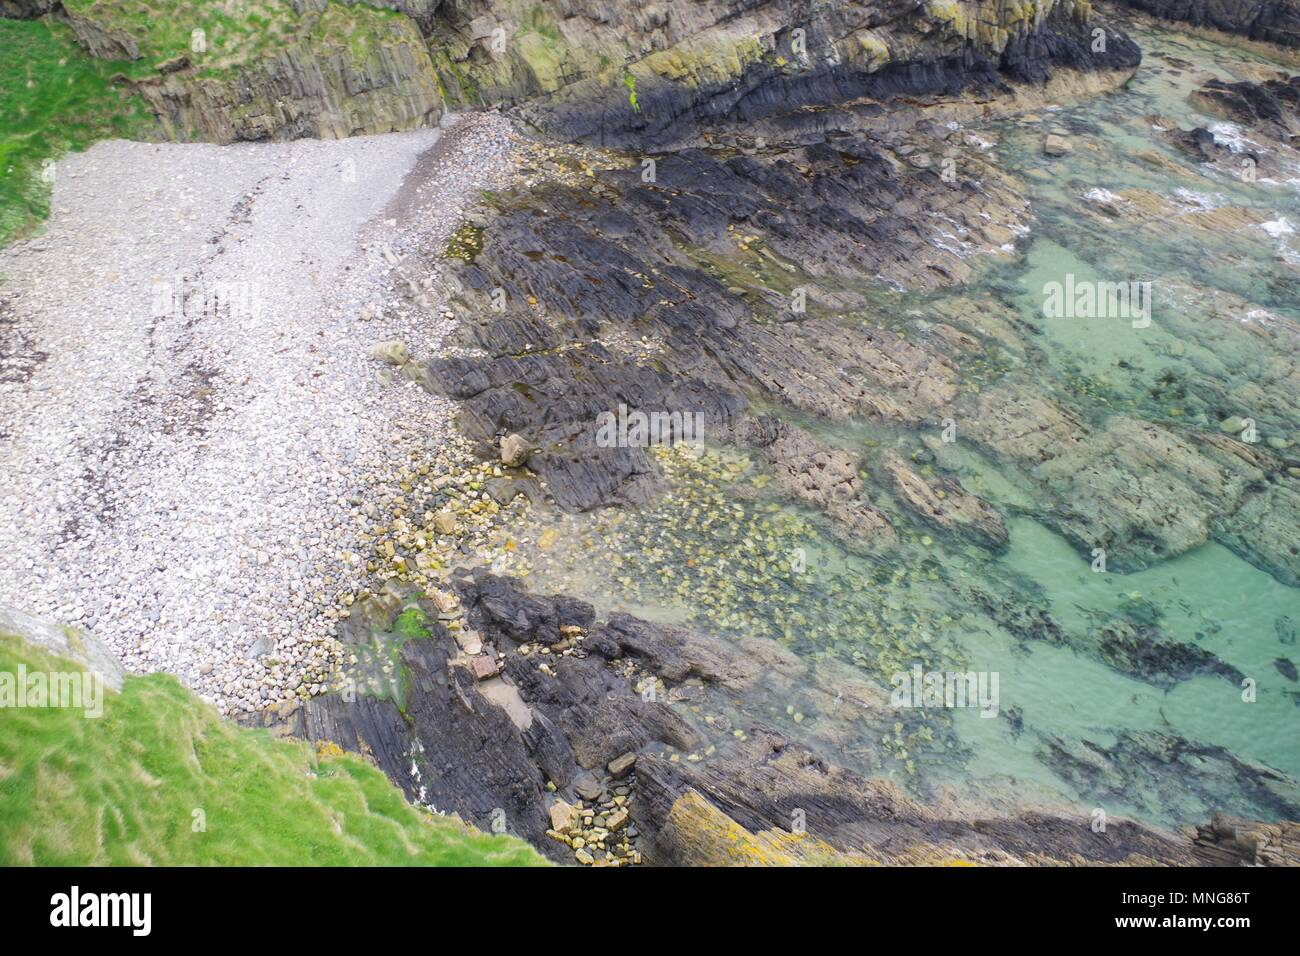 Inviting Turquoise Water of the Rugged Coast by Findlater Castle, Sanded, Scotland, UK. - Stock Image